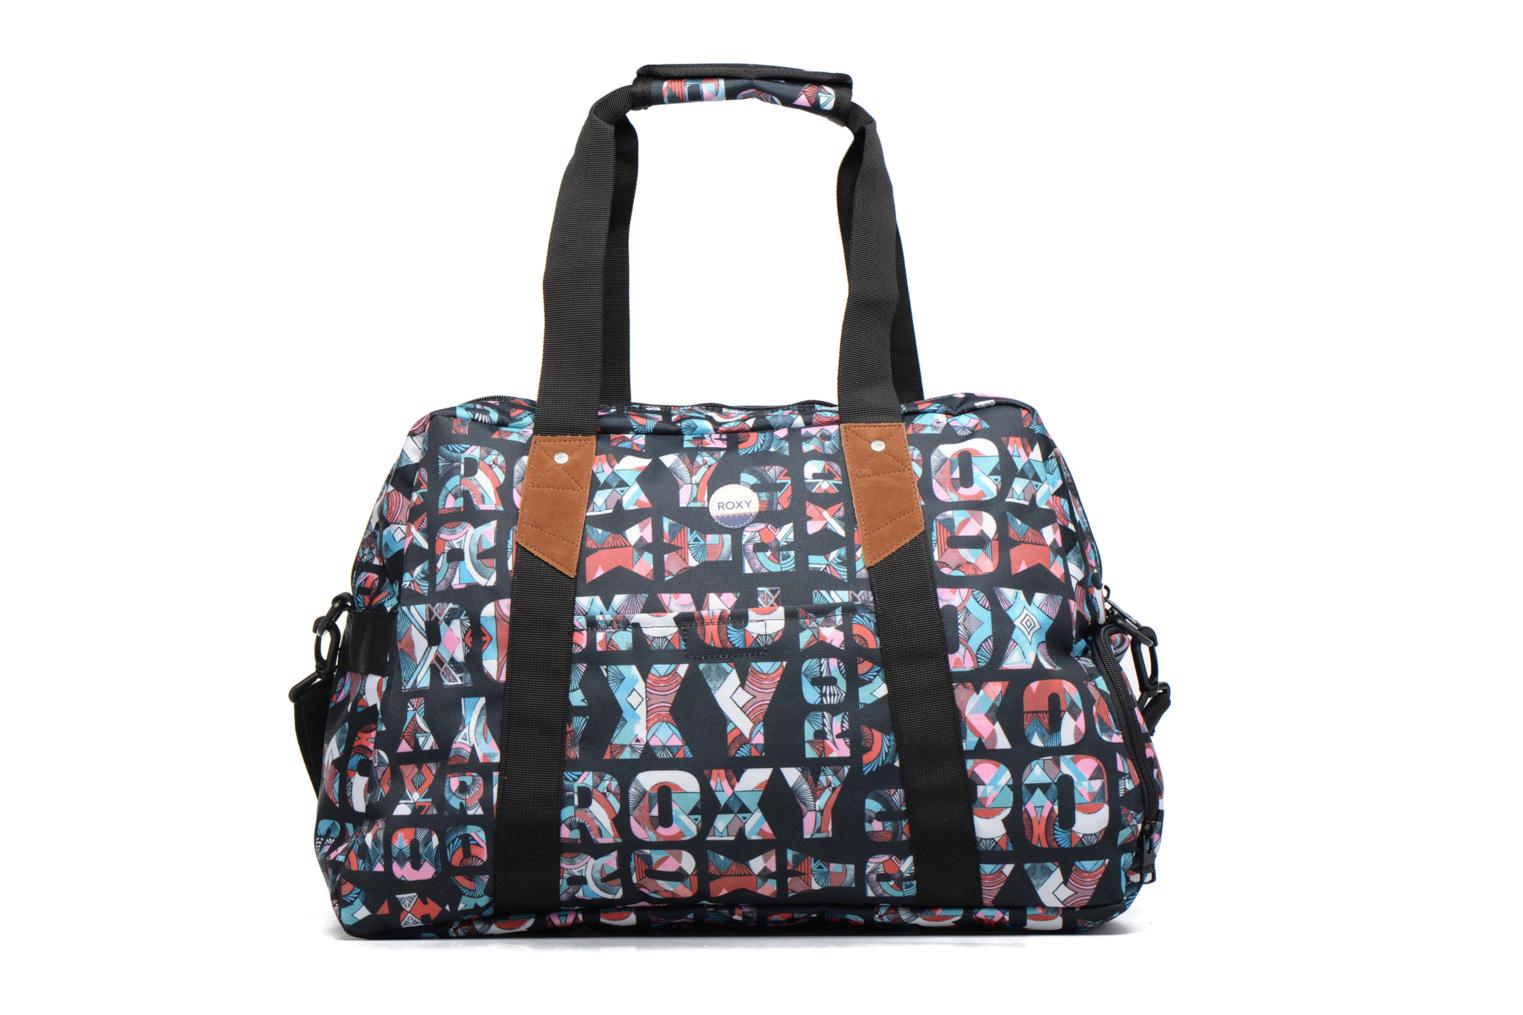 Sacs de sport Roxy Sugar it up Multicolore vue détail/paire